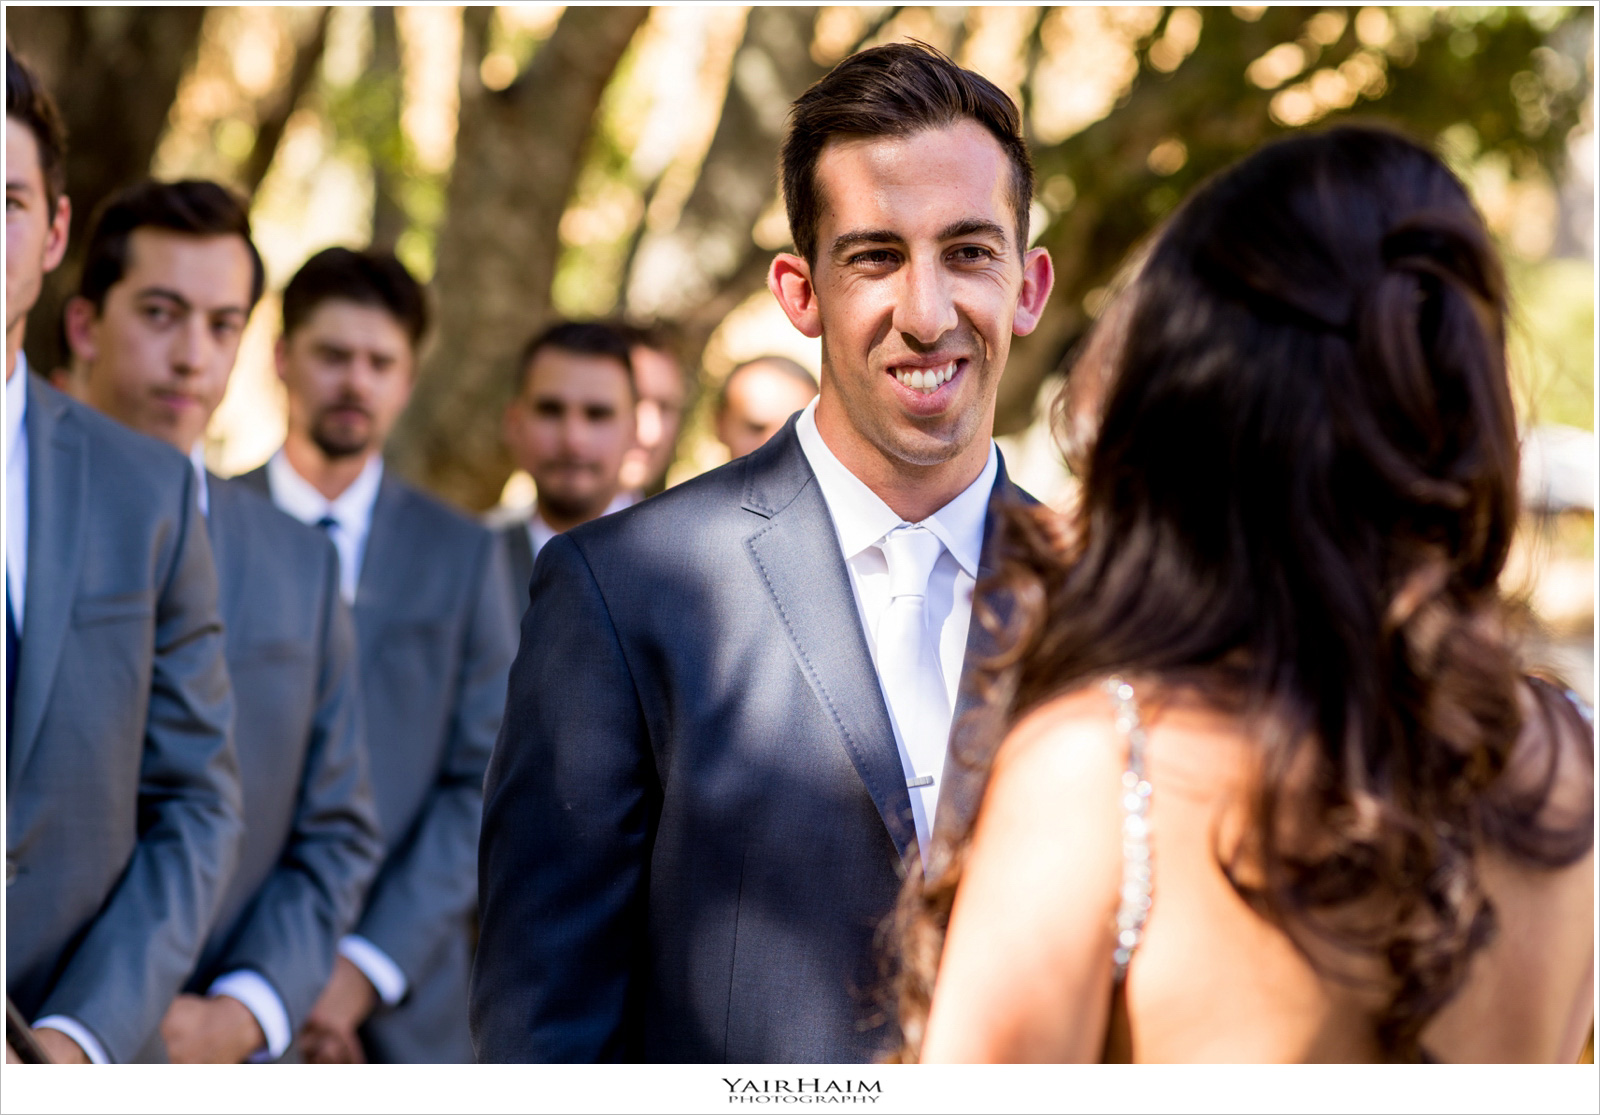 Destination-wedding-photographer-Yair-Haim-19